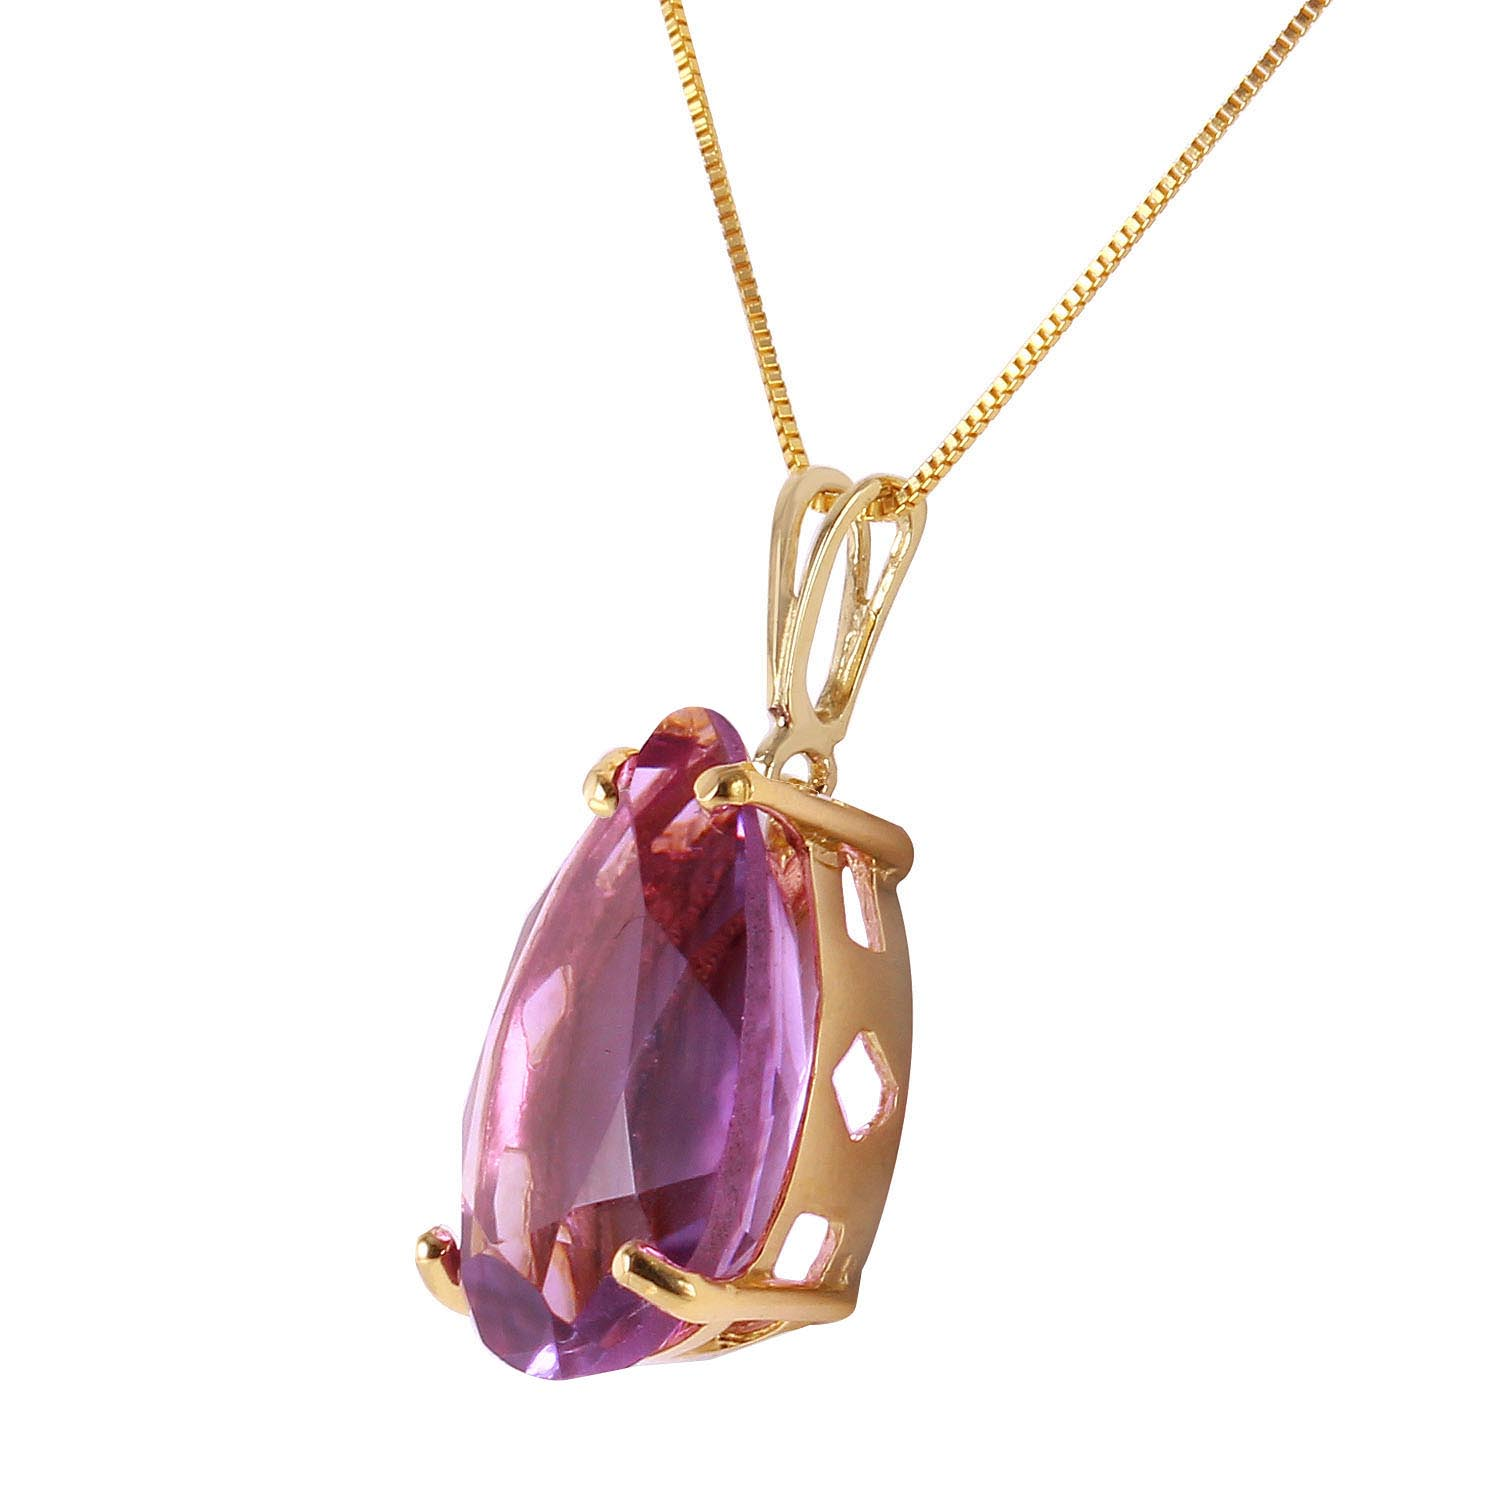 Pear Cut Amethyst Pendant Necklace 5.0ct in 9ct Gold